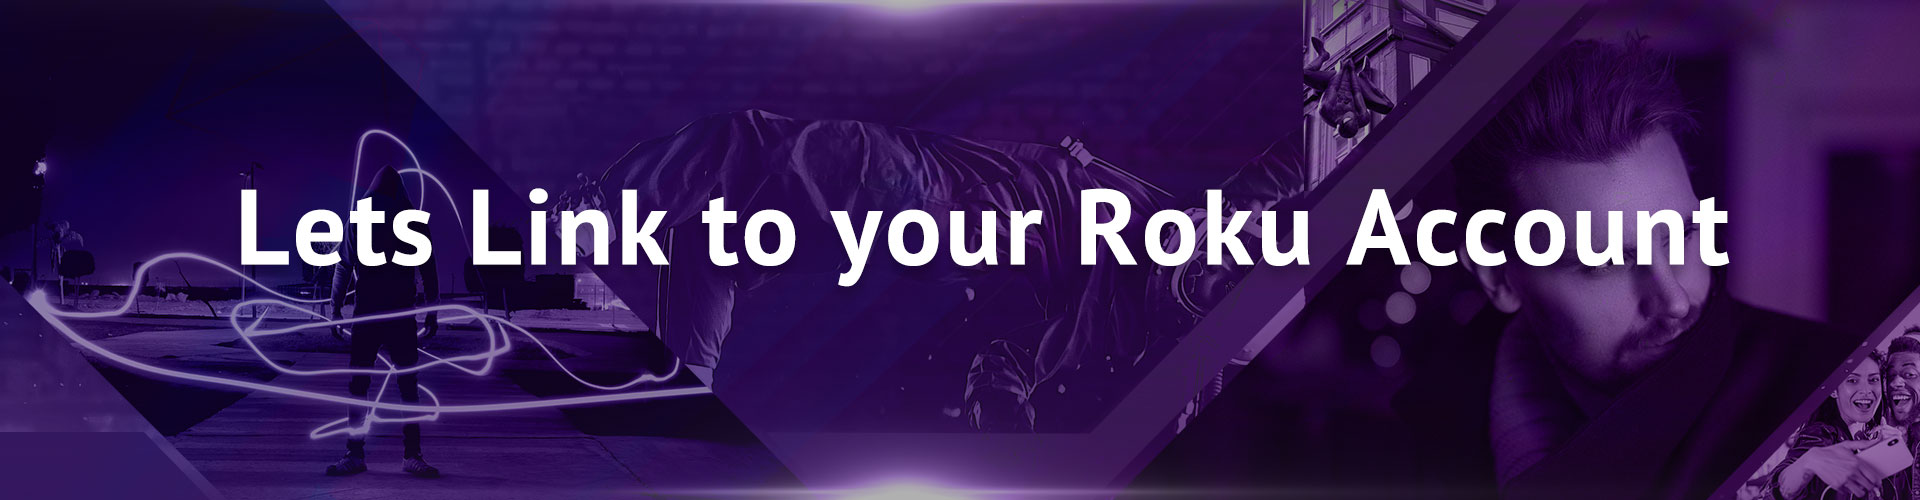 What to do with the Roku Account?